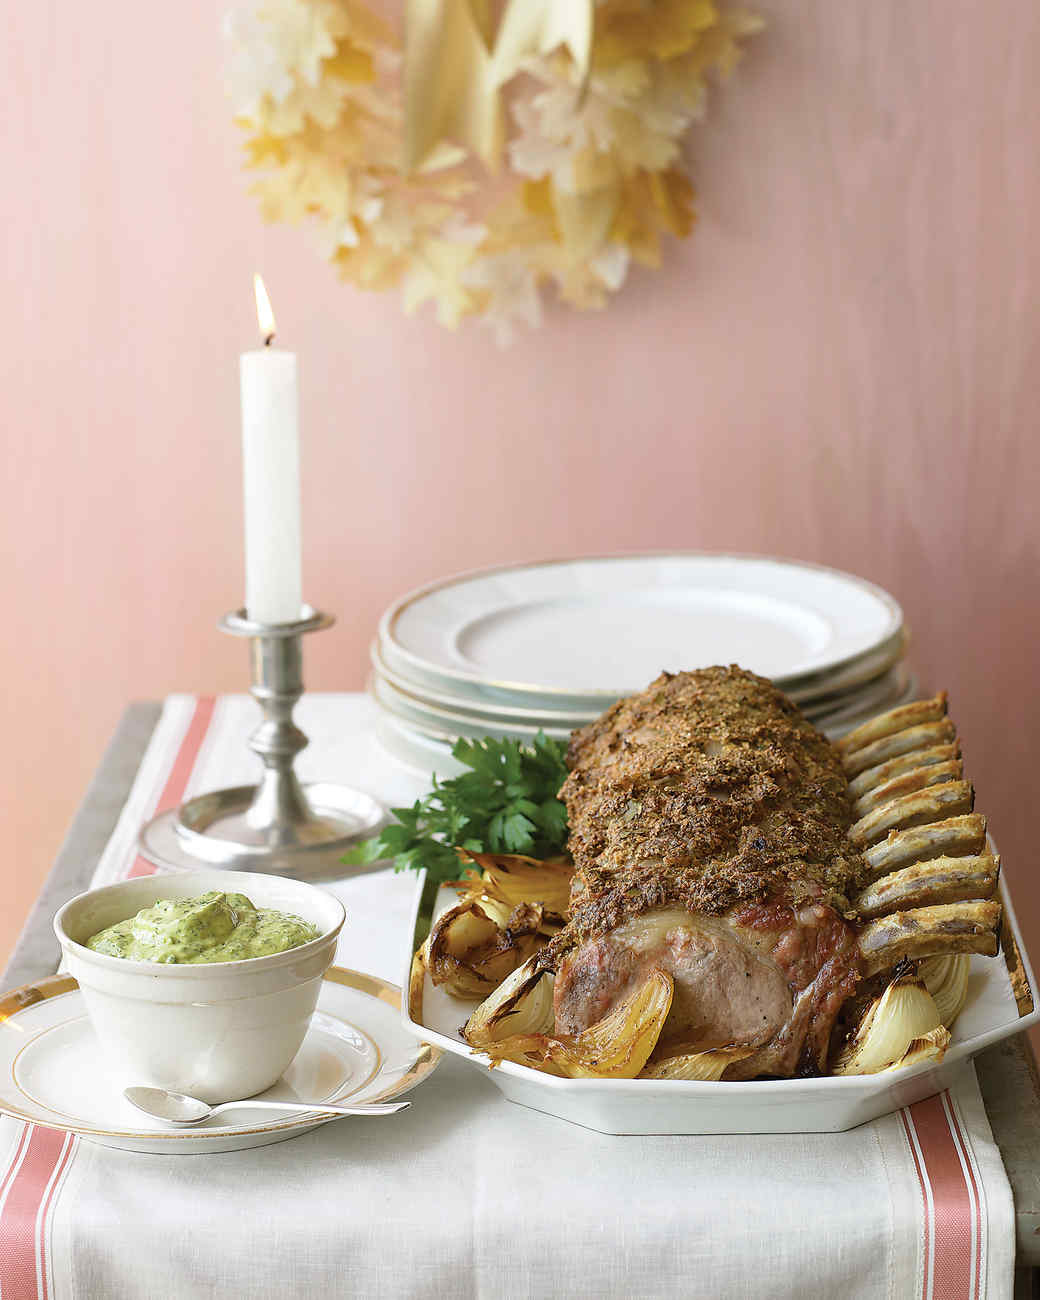 Bay-Leaf-Crusted Pork Roast